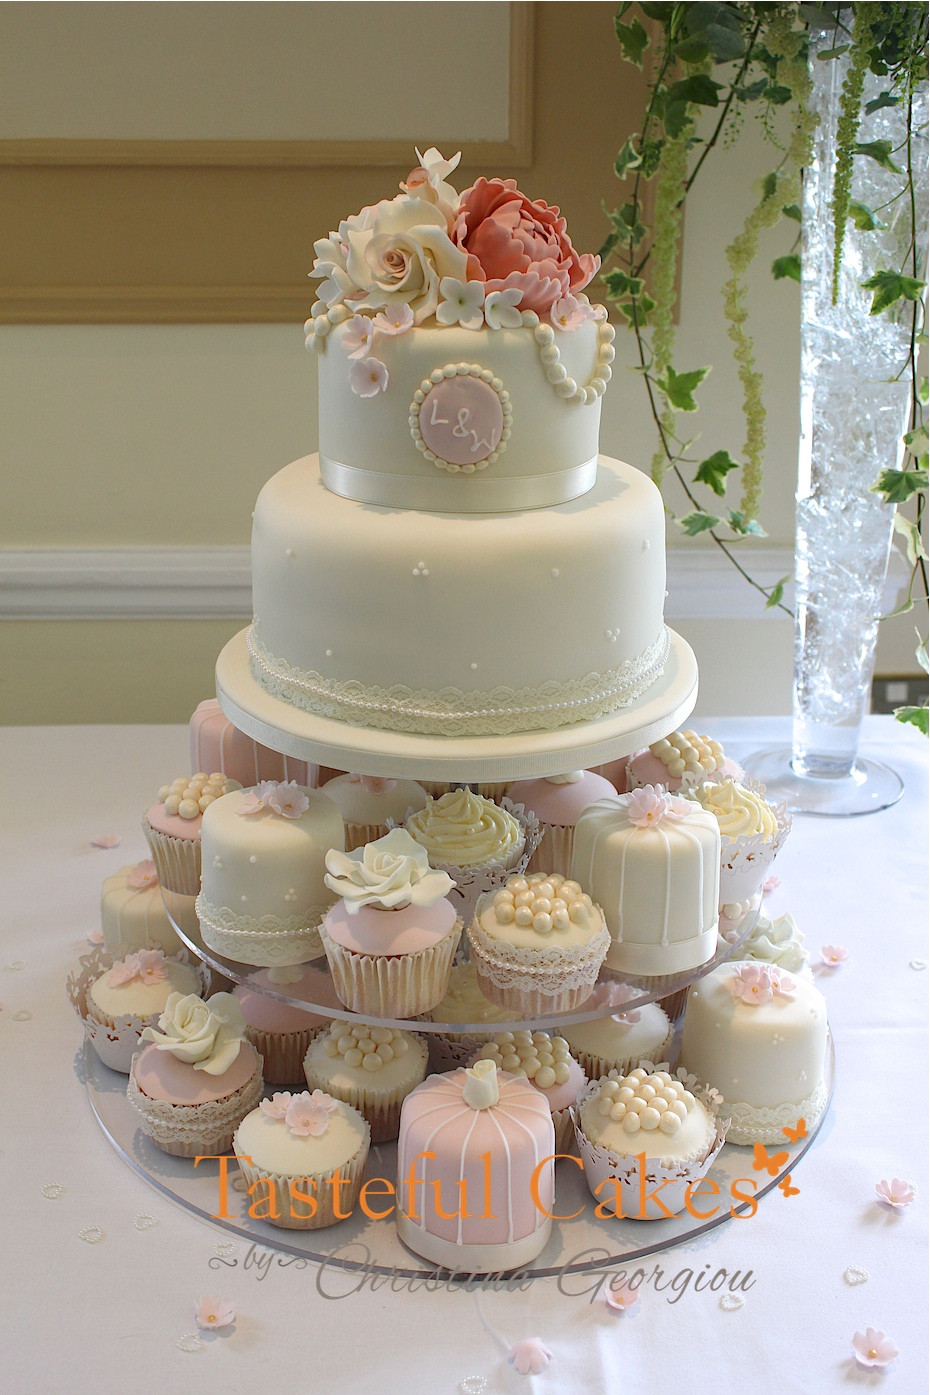 Wedding Cake Cupcakes  Tasteful Cakes By Christina Georgiou